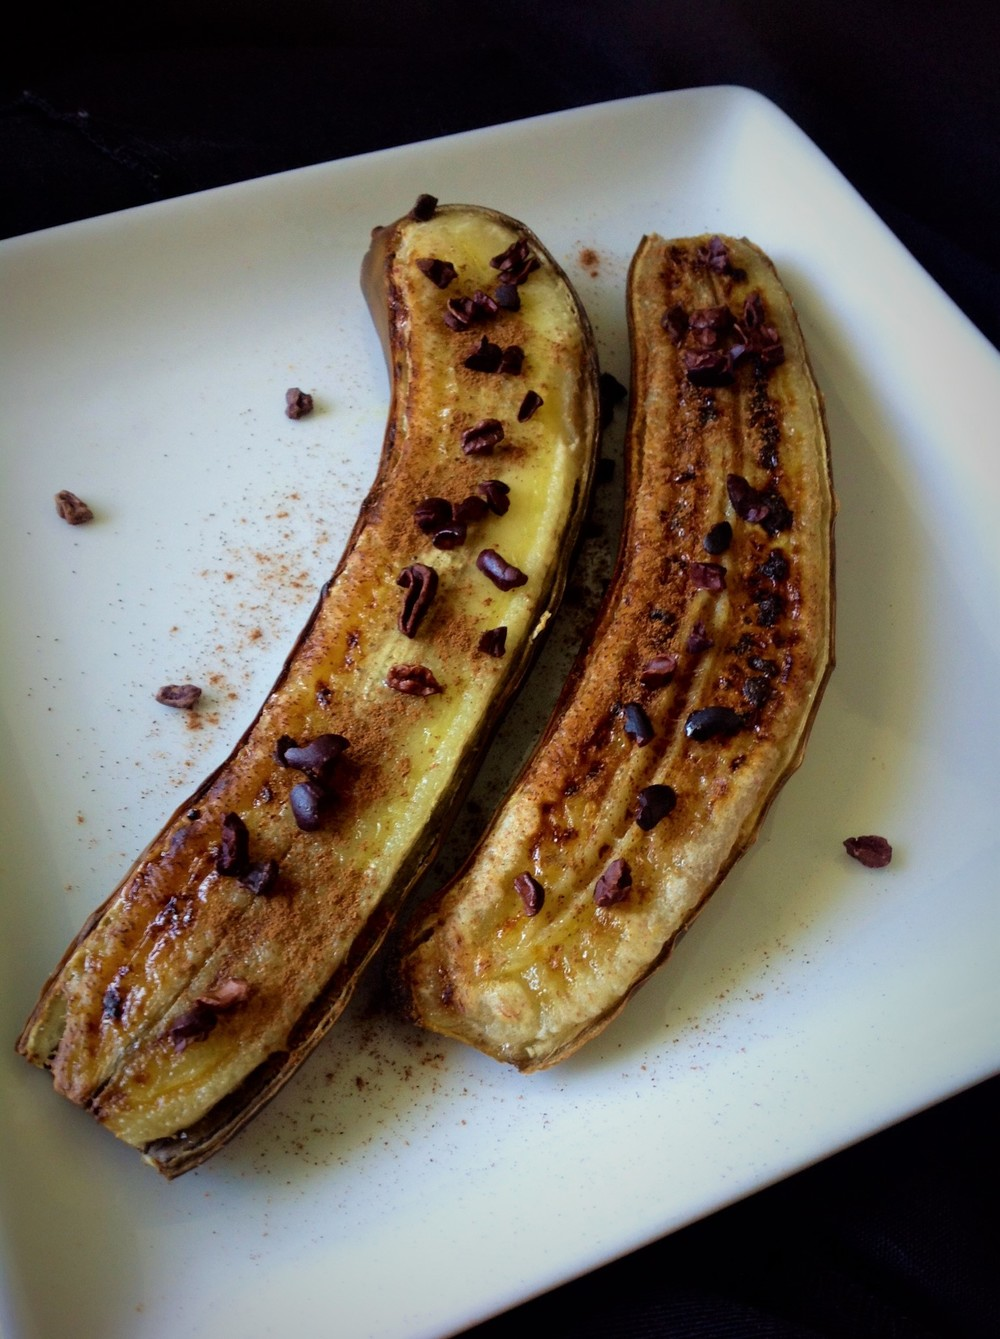 Broiled Banana with Cinnamon and Cocoa Nibs